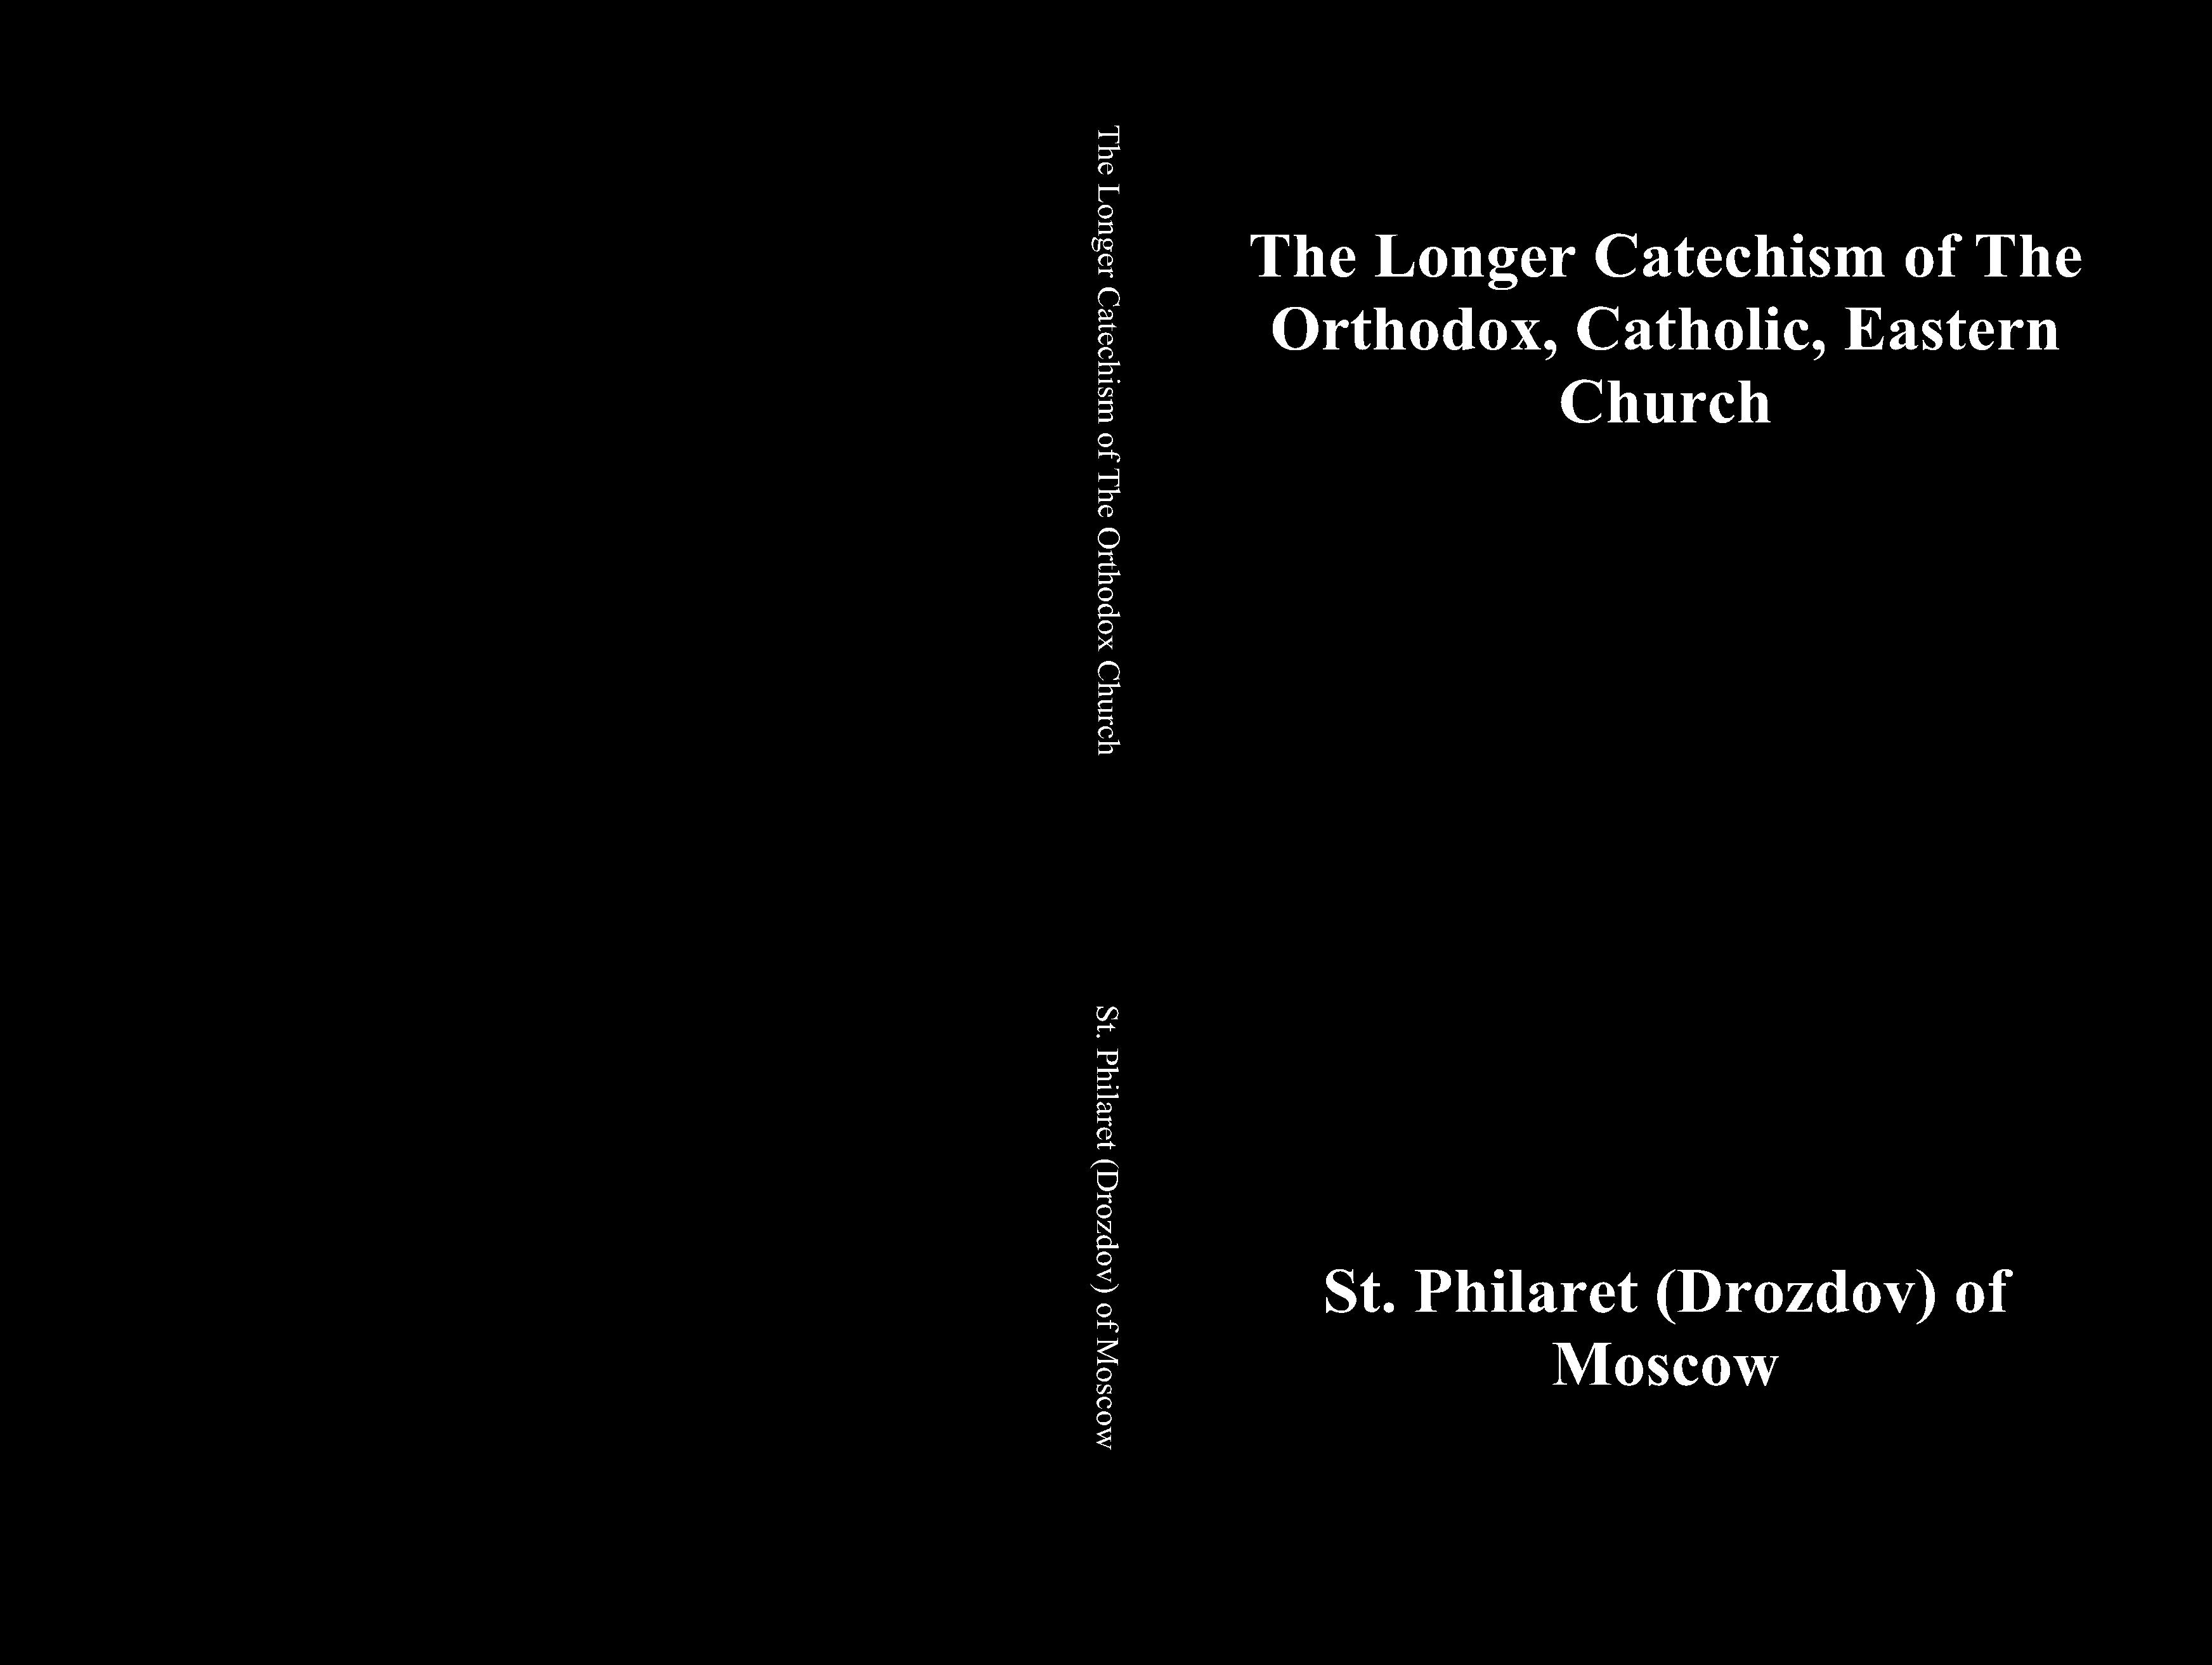 The Longer Catechism of the Orthodox Church cover image